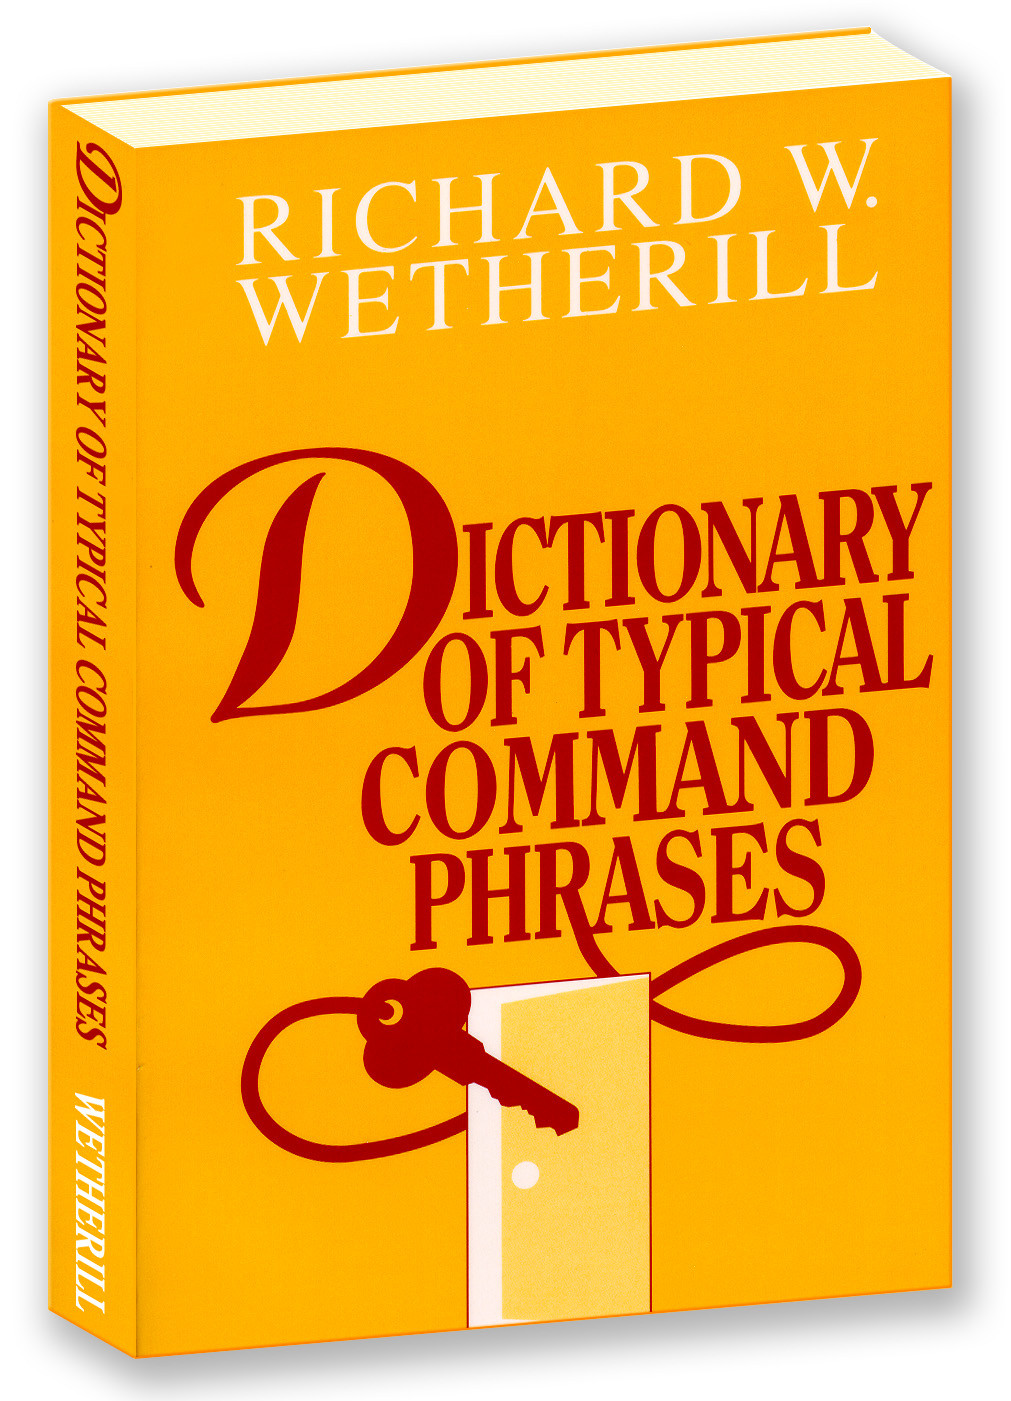 Adverb phrases: types and meanings